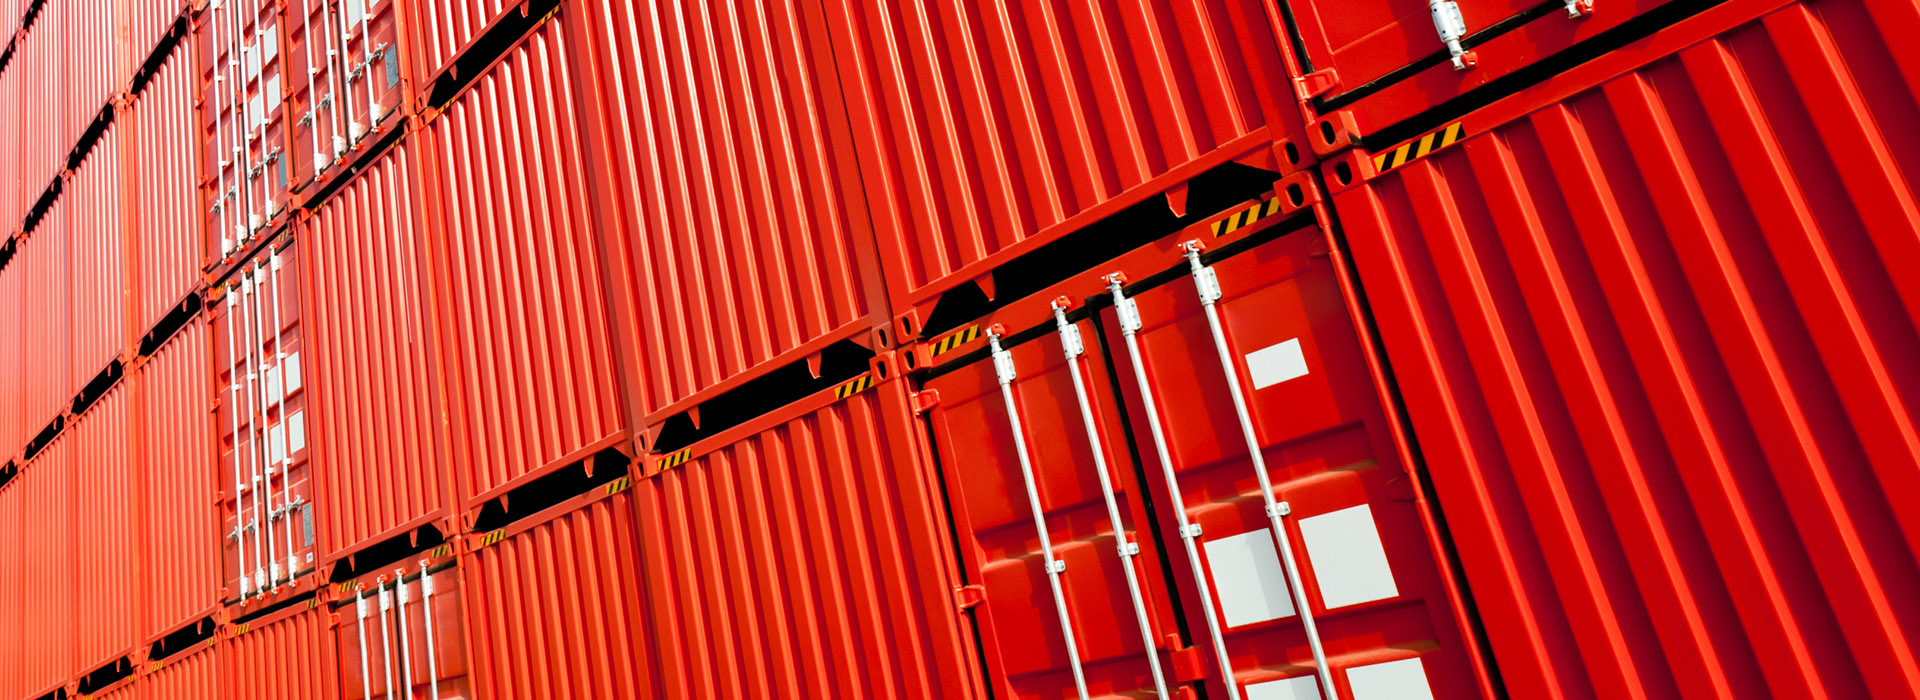 Red shipping containers